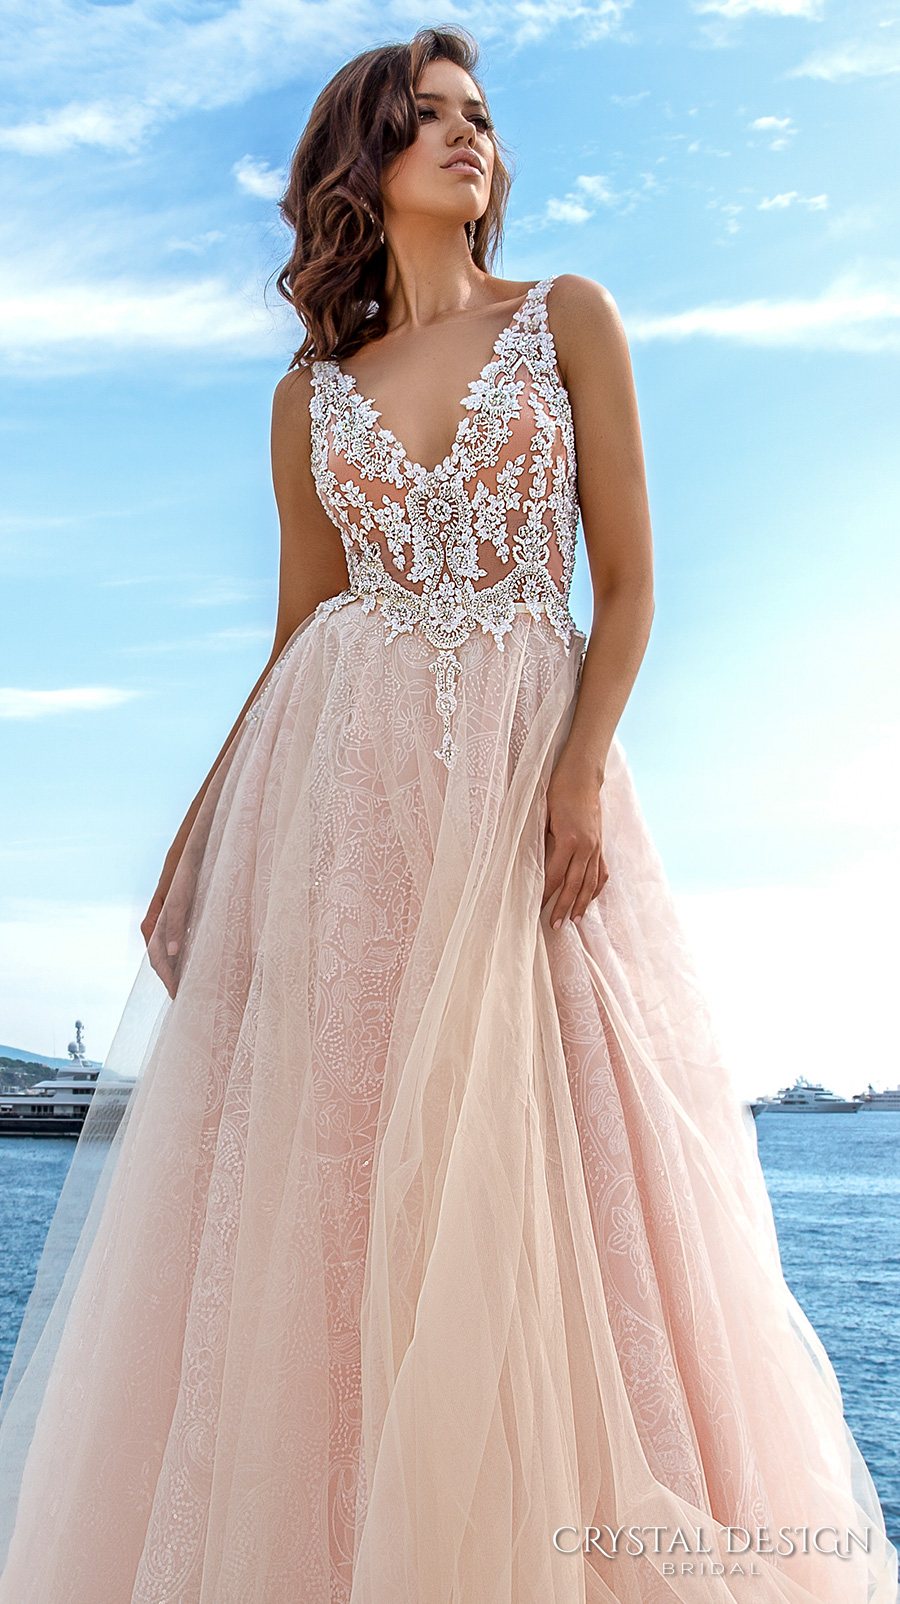 crystal-design-2017-bridal-sleeveless-v-neck-heavily-embellished-bodice-tulle-skirt-princess-romantic-blush-color-a-line-wedding-dress-low-back-long-royal-train-andrea-zv-